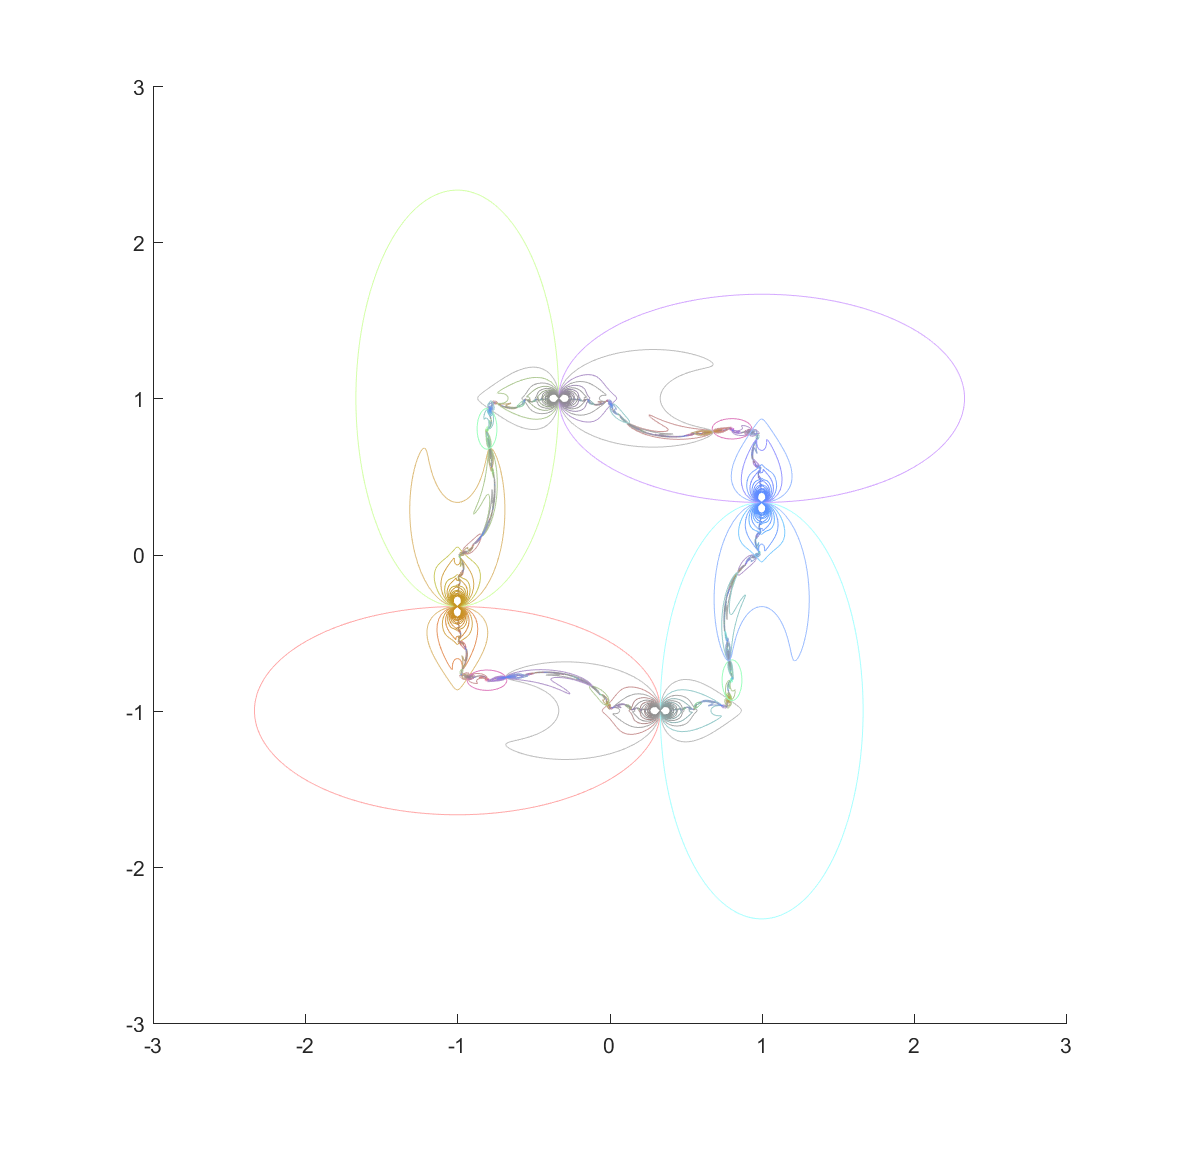 Nested mappings of the ellipses in the chain, bounding the invariant set. Colors are mixtures of the colors of the generating ellipses, with an increase in saturation.